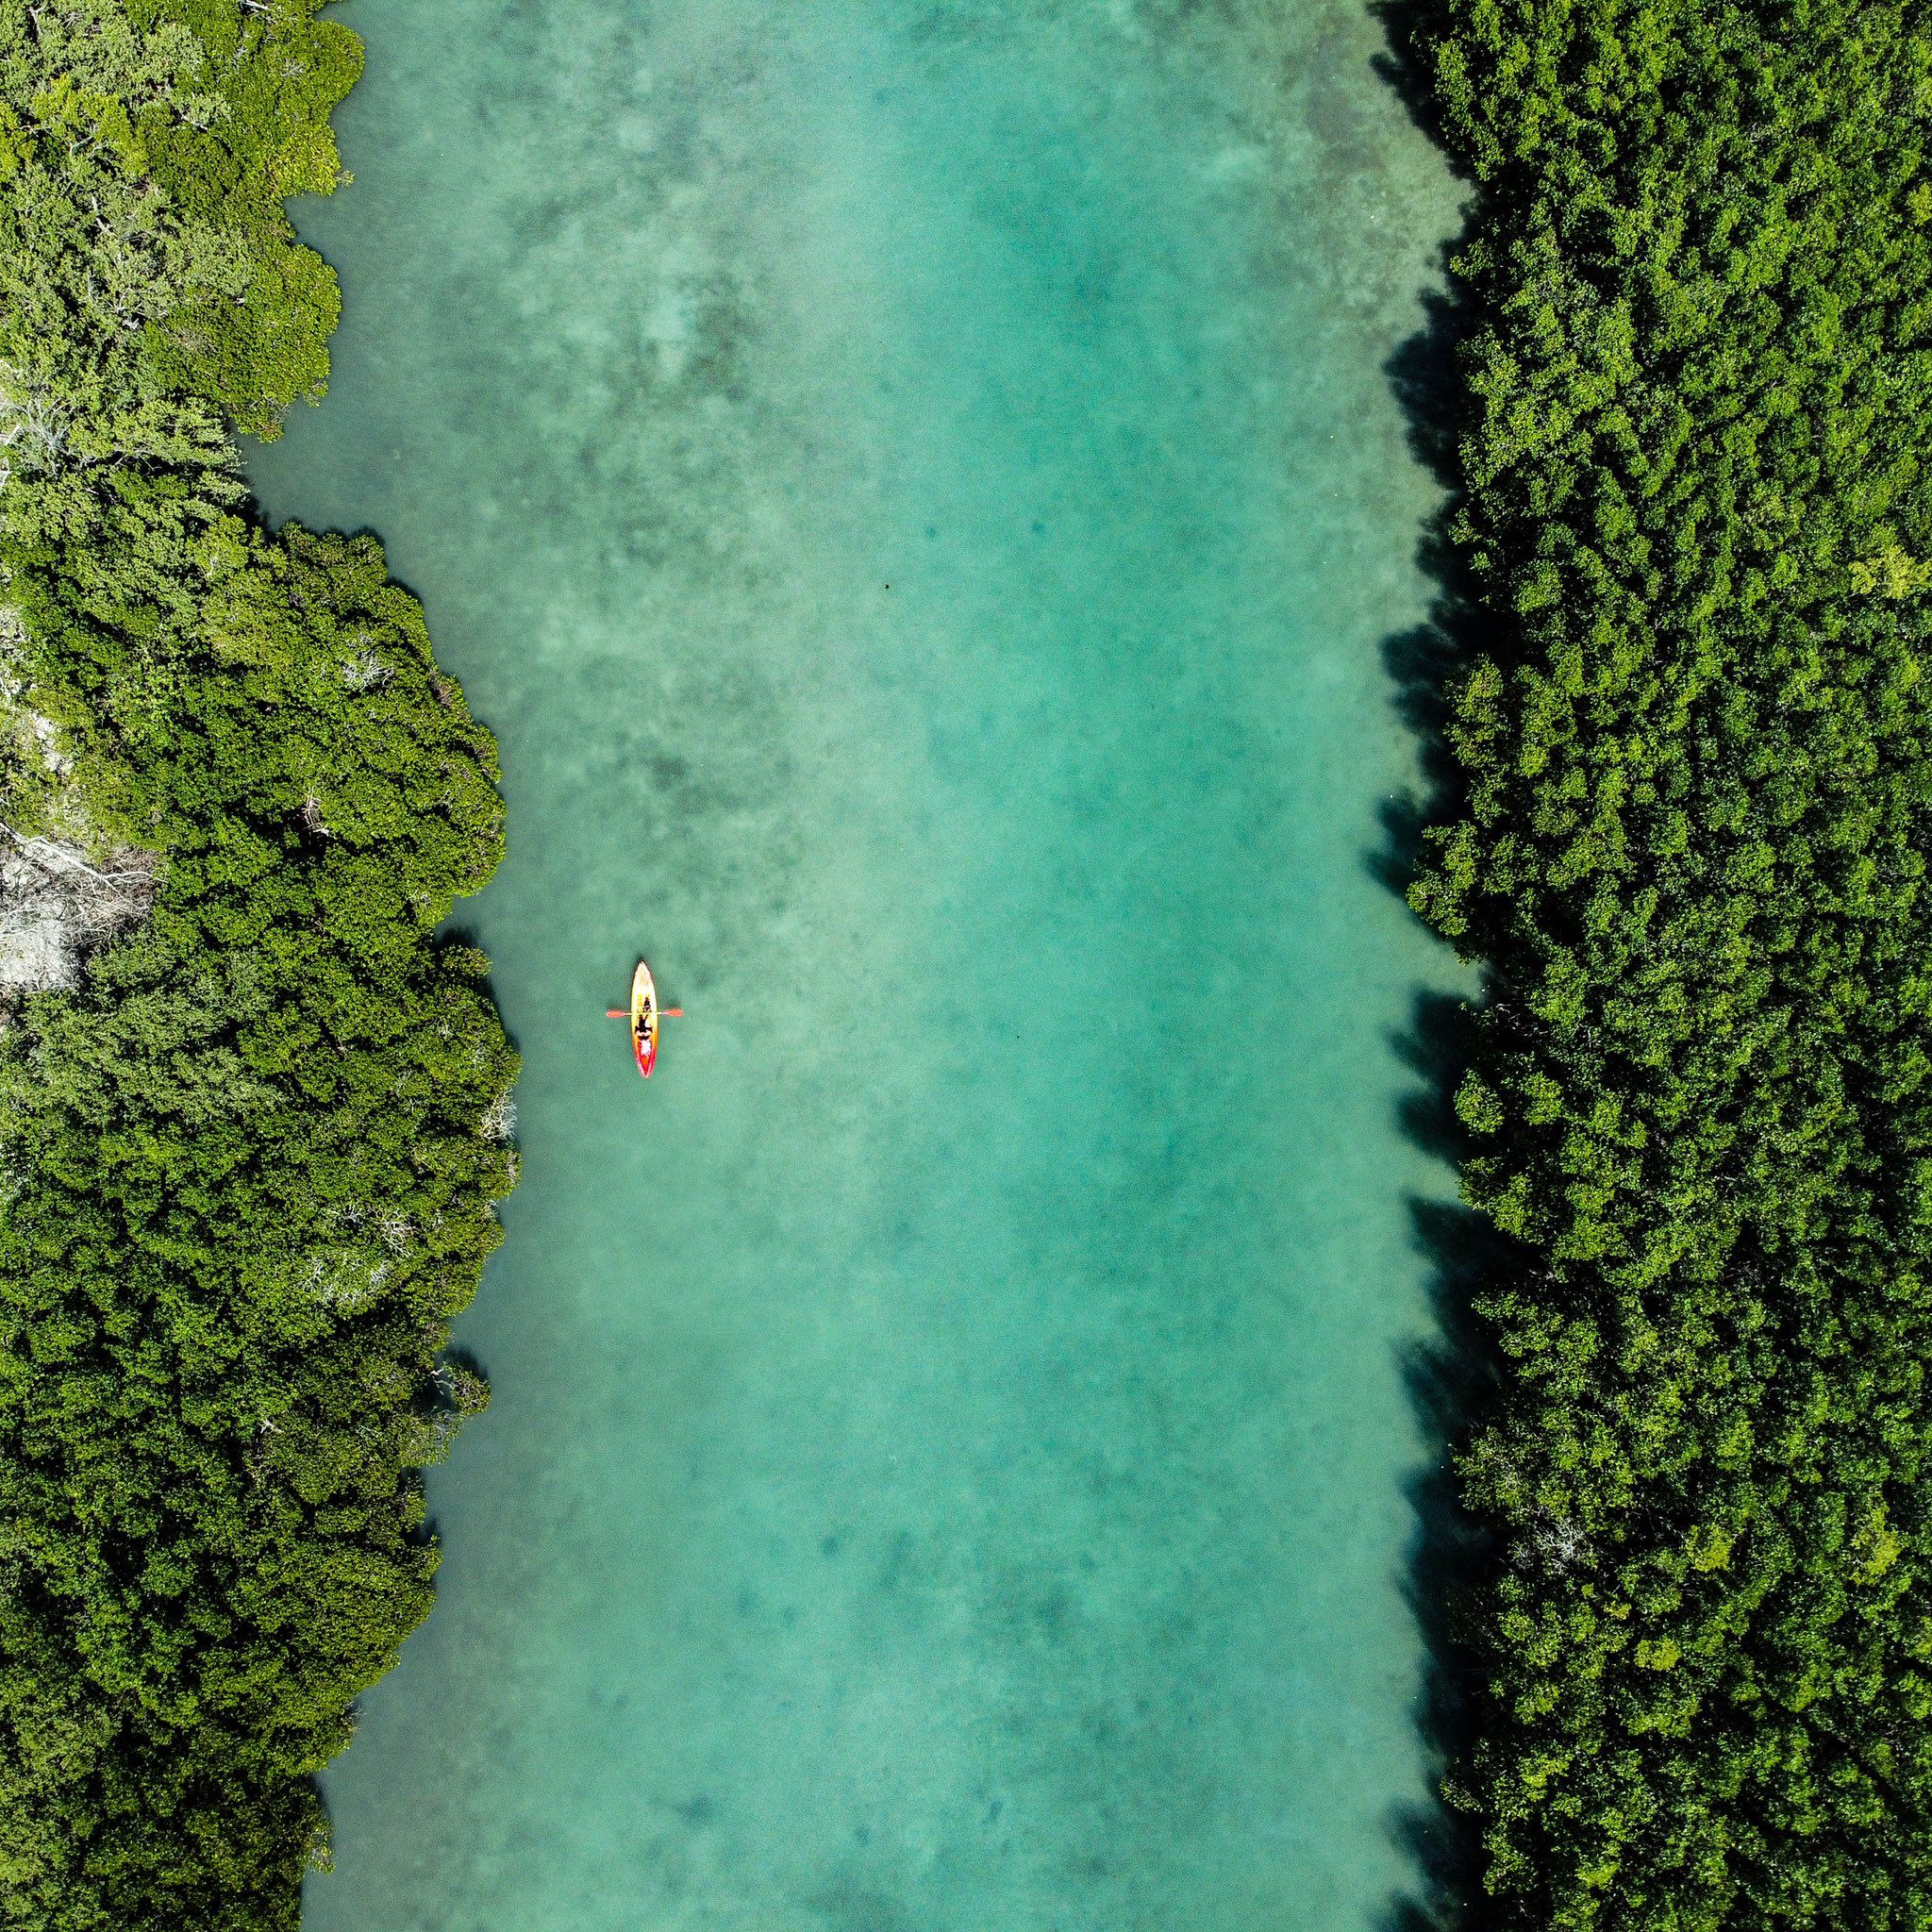 Aerial view of blue green water & kayaker